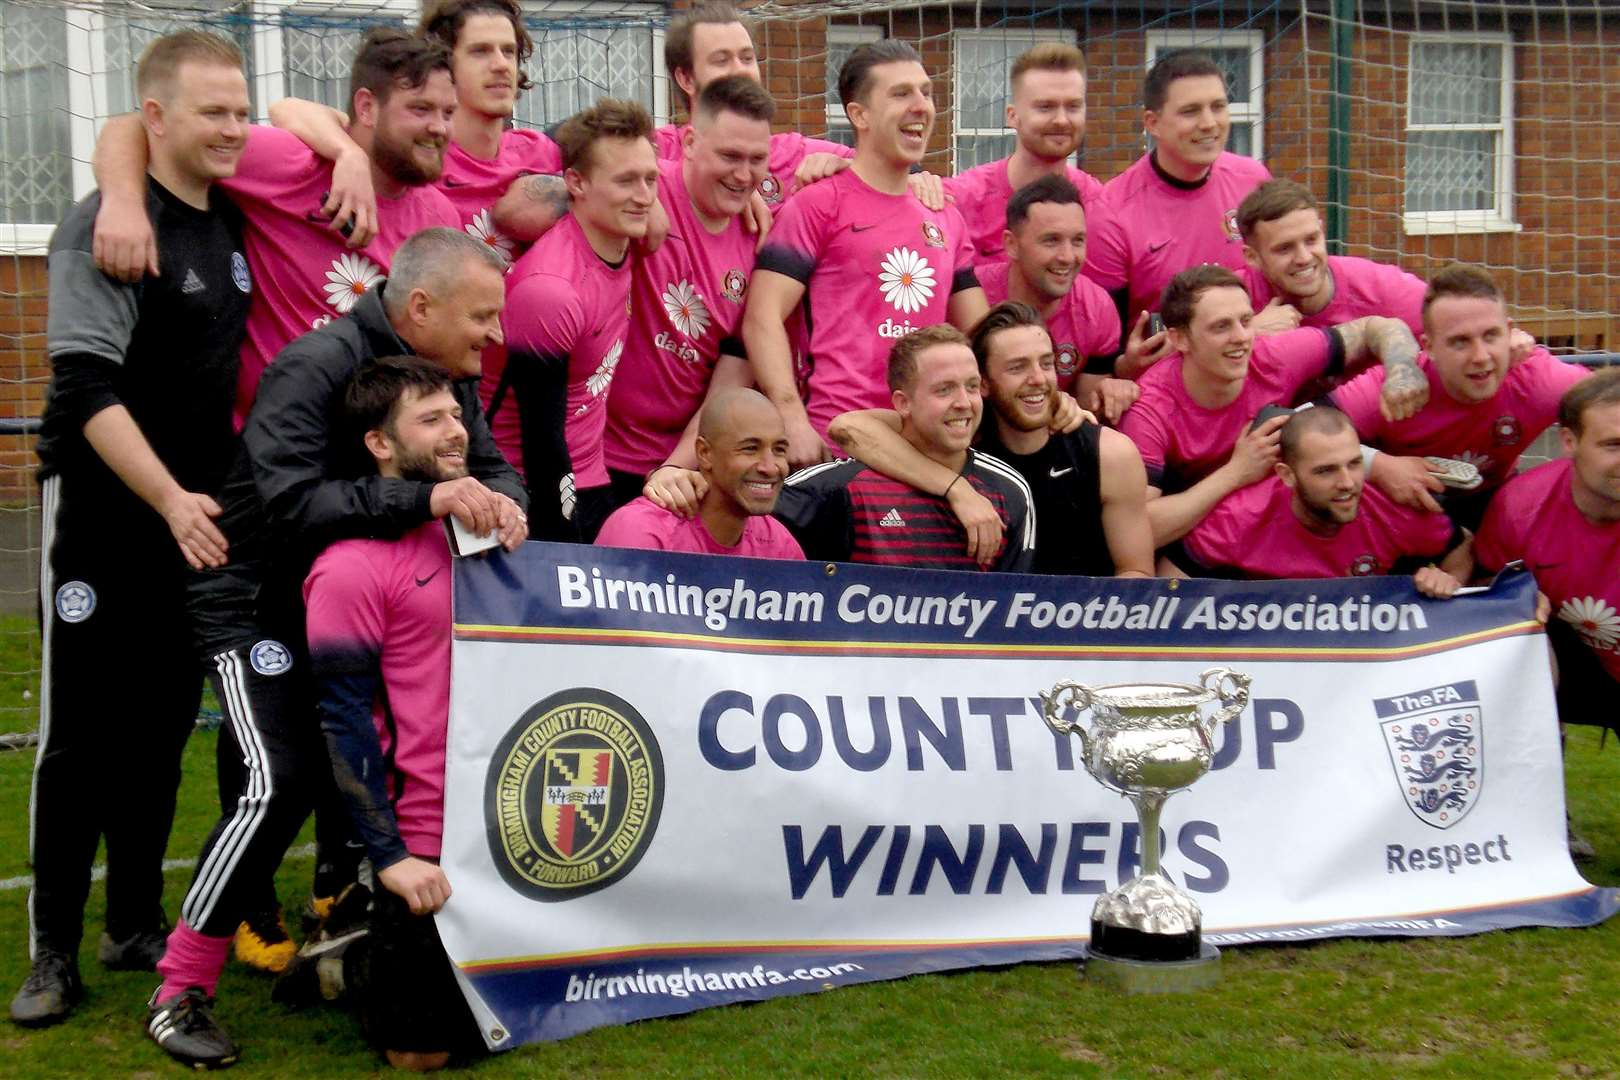 Claverdon became the first Stratford Alliance side to win a Birmingham County FA competition, winning the Saturday Amateur Cup in 2018. Photo submitted